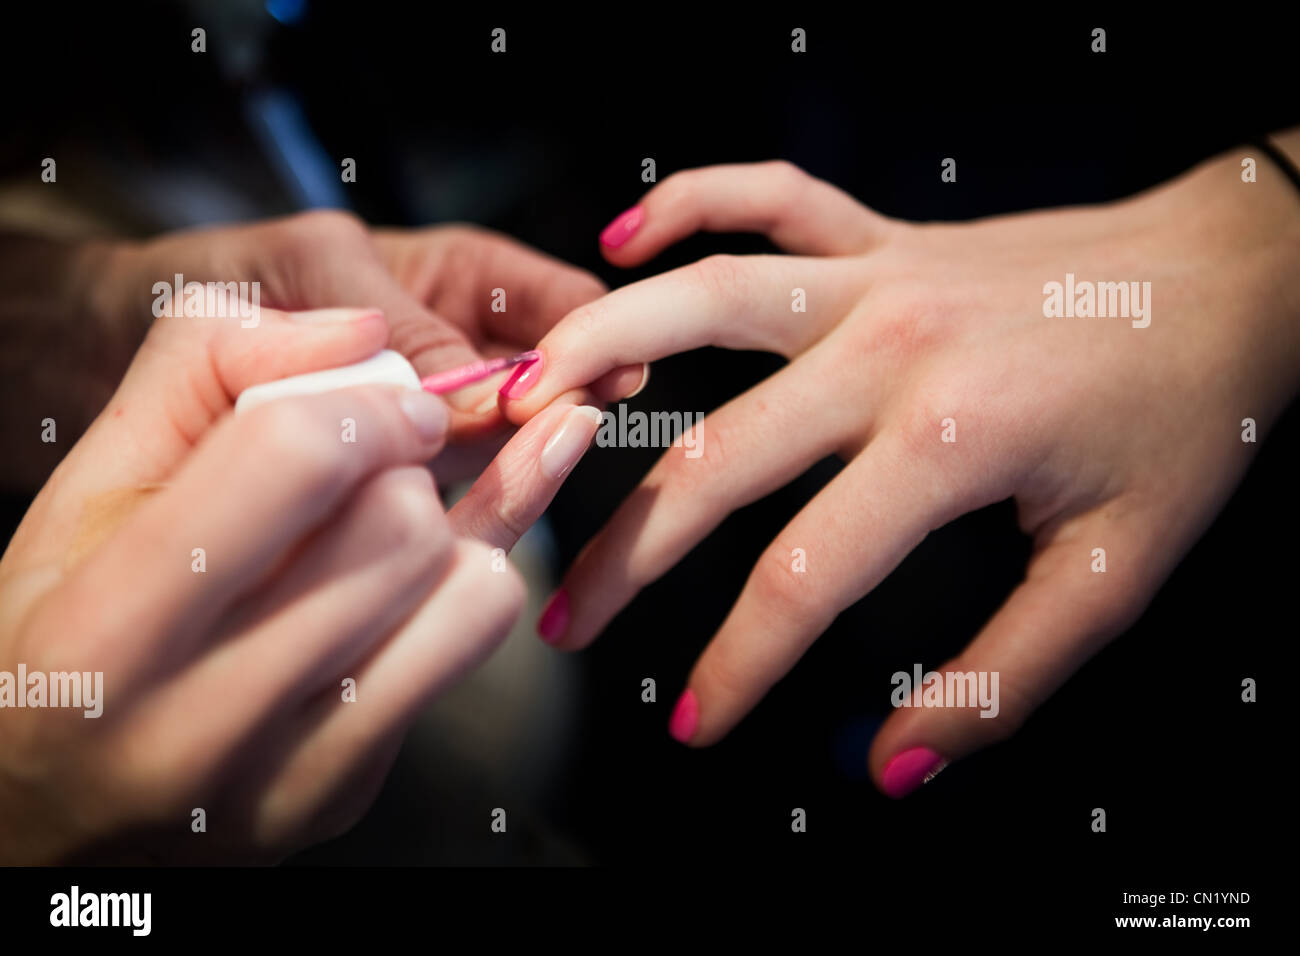 A woman having her nails painted pink - Stock Image